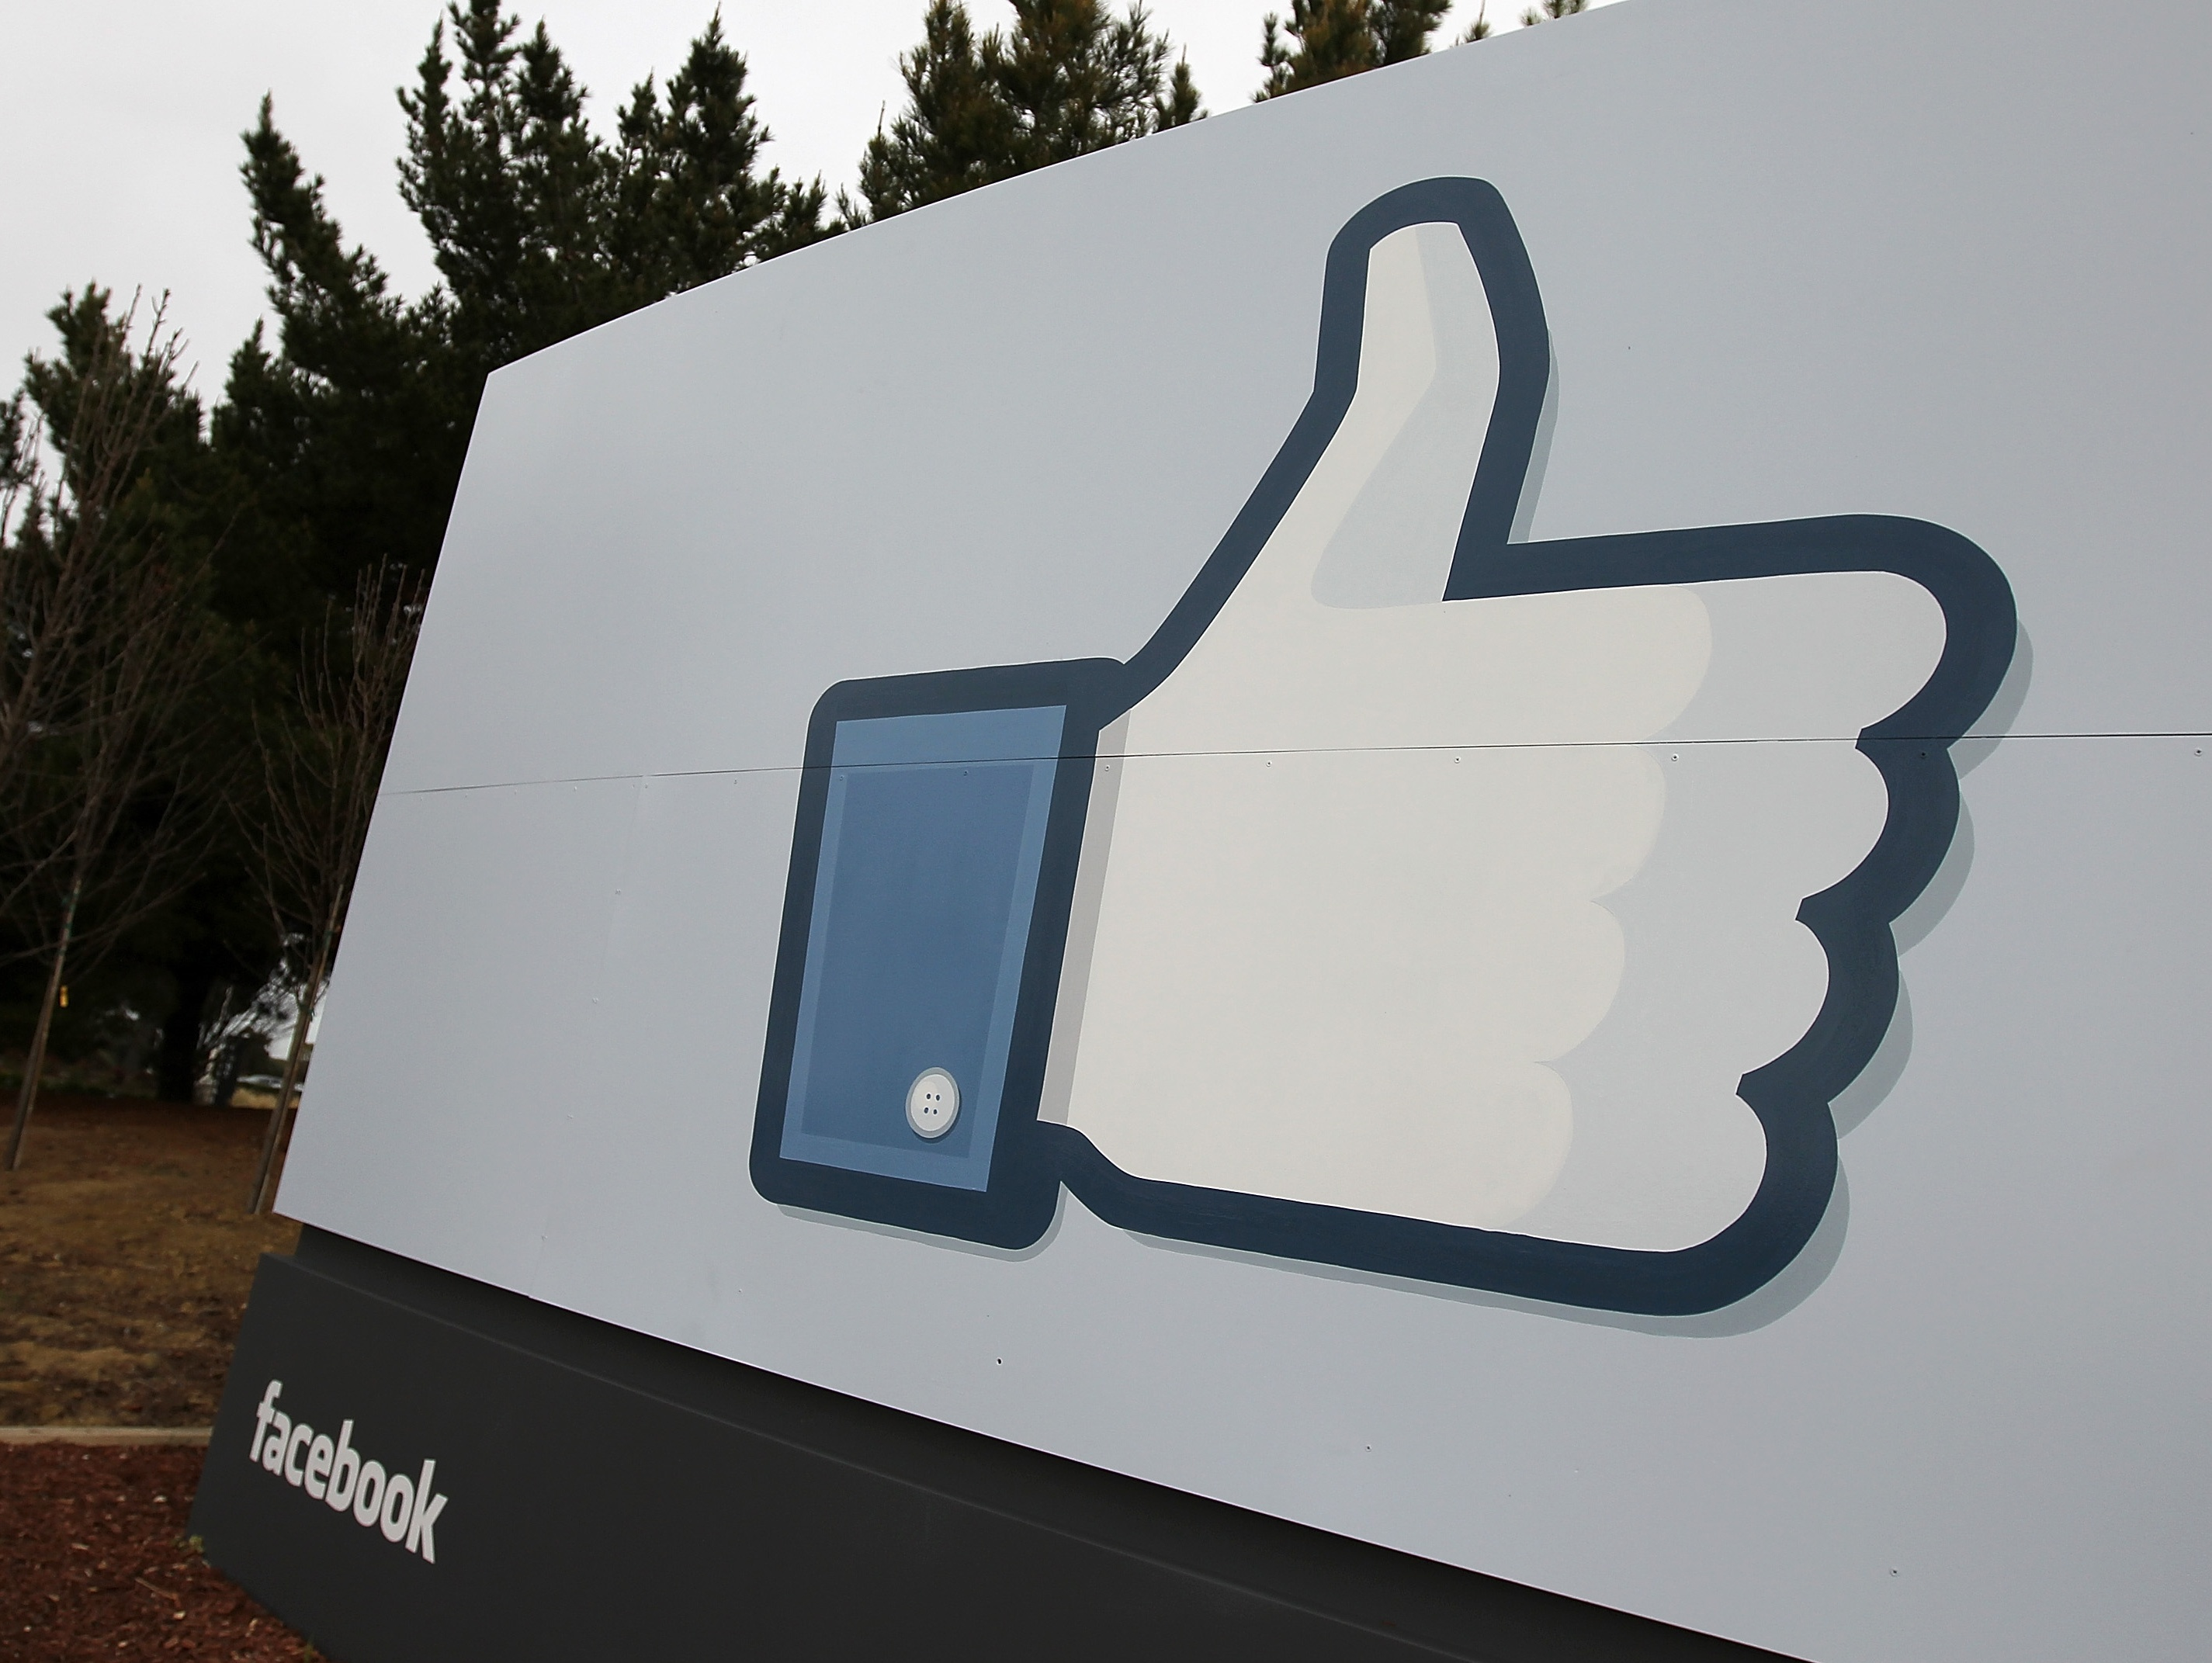 Facebook may follow Instagram in dropping likes